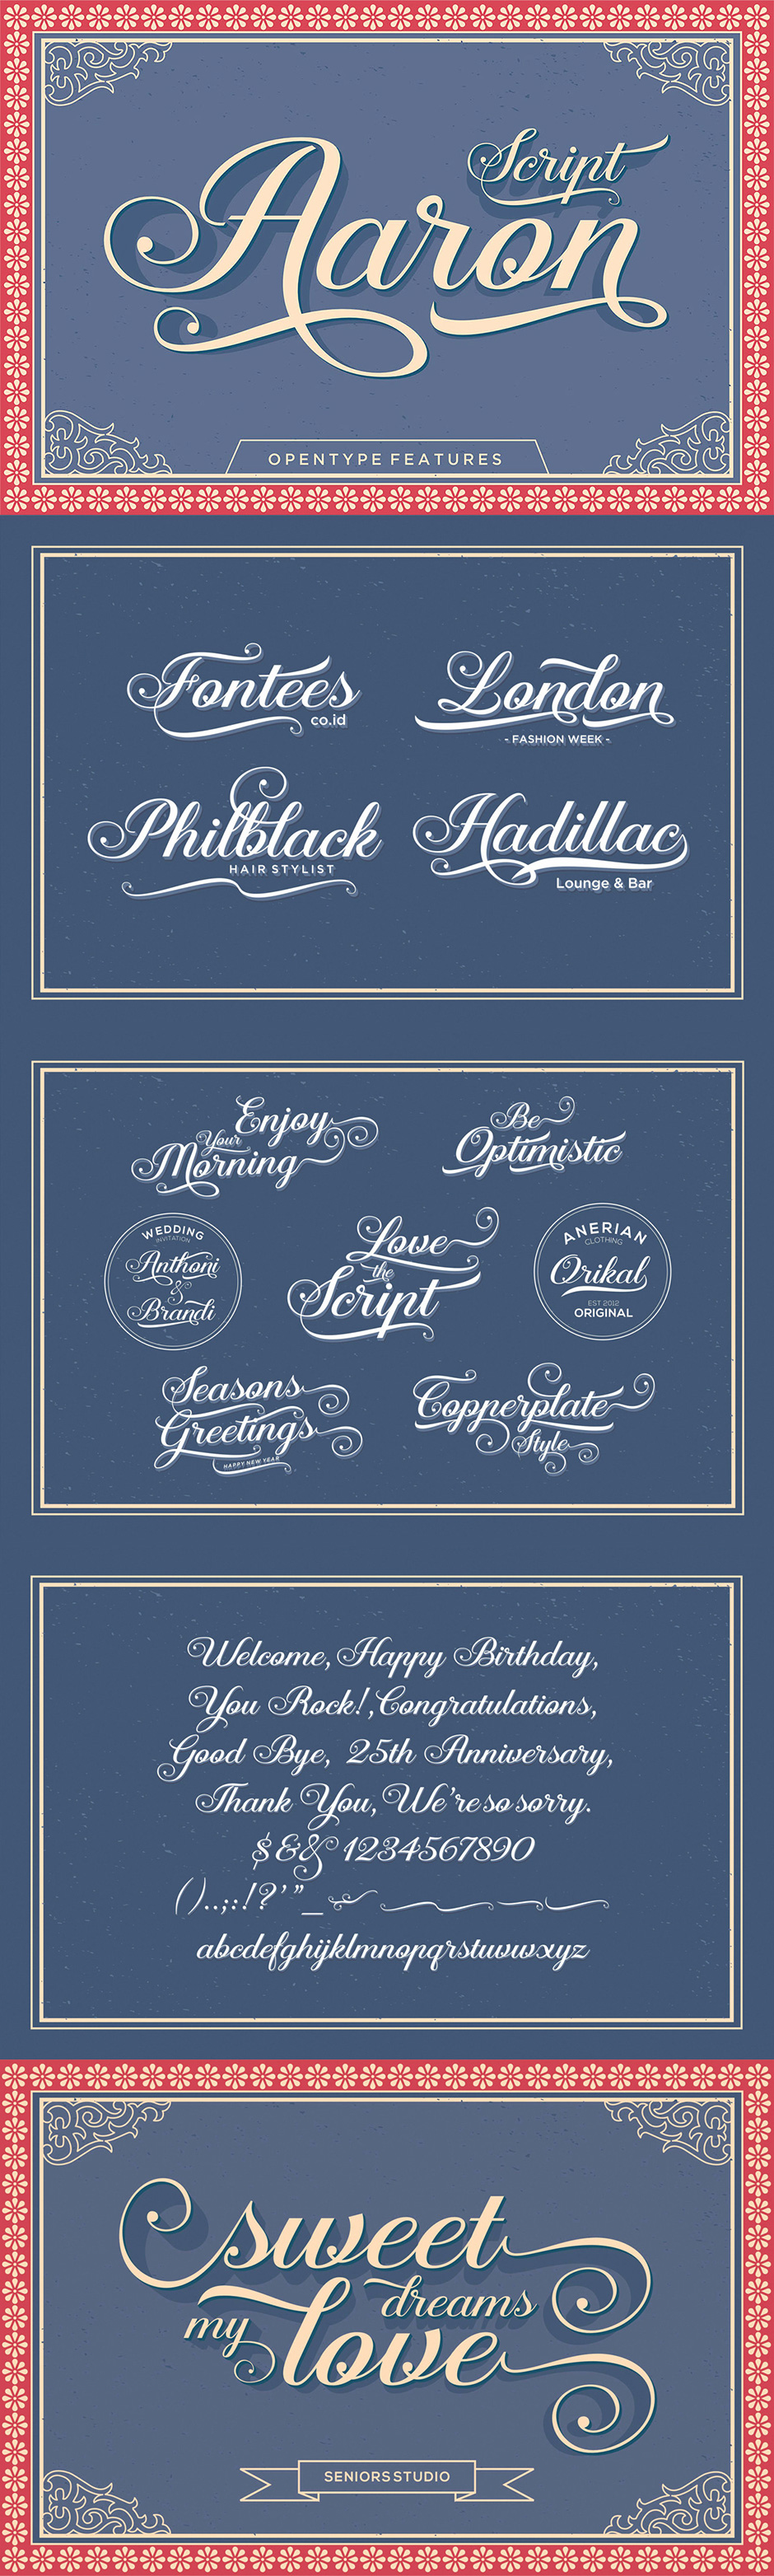 Definitive Fonts Bundle Aaron Script